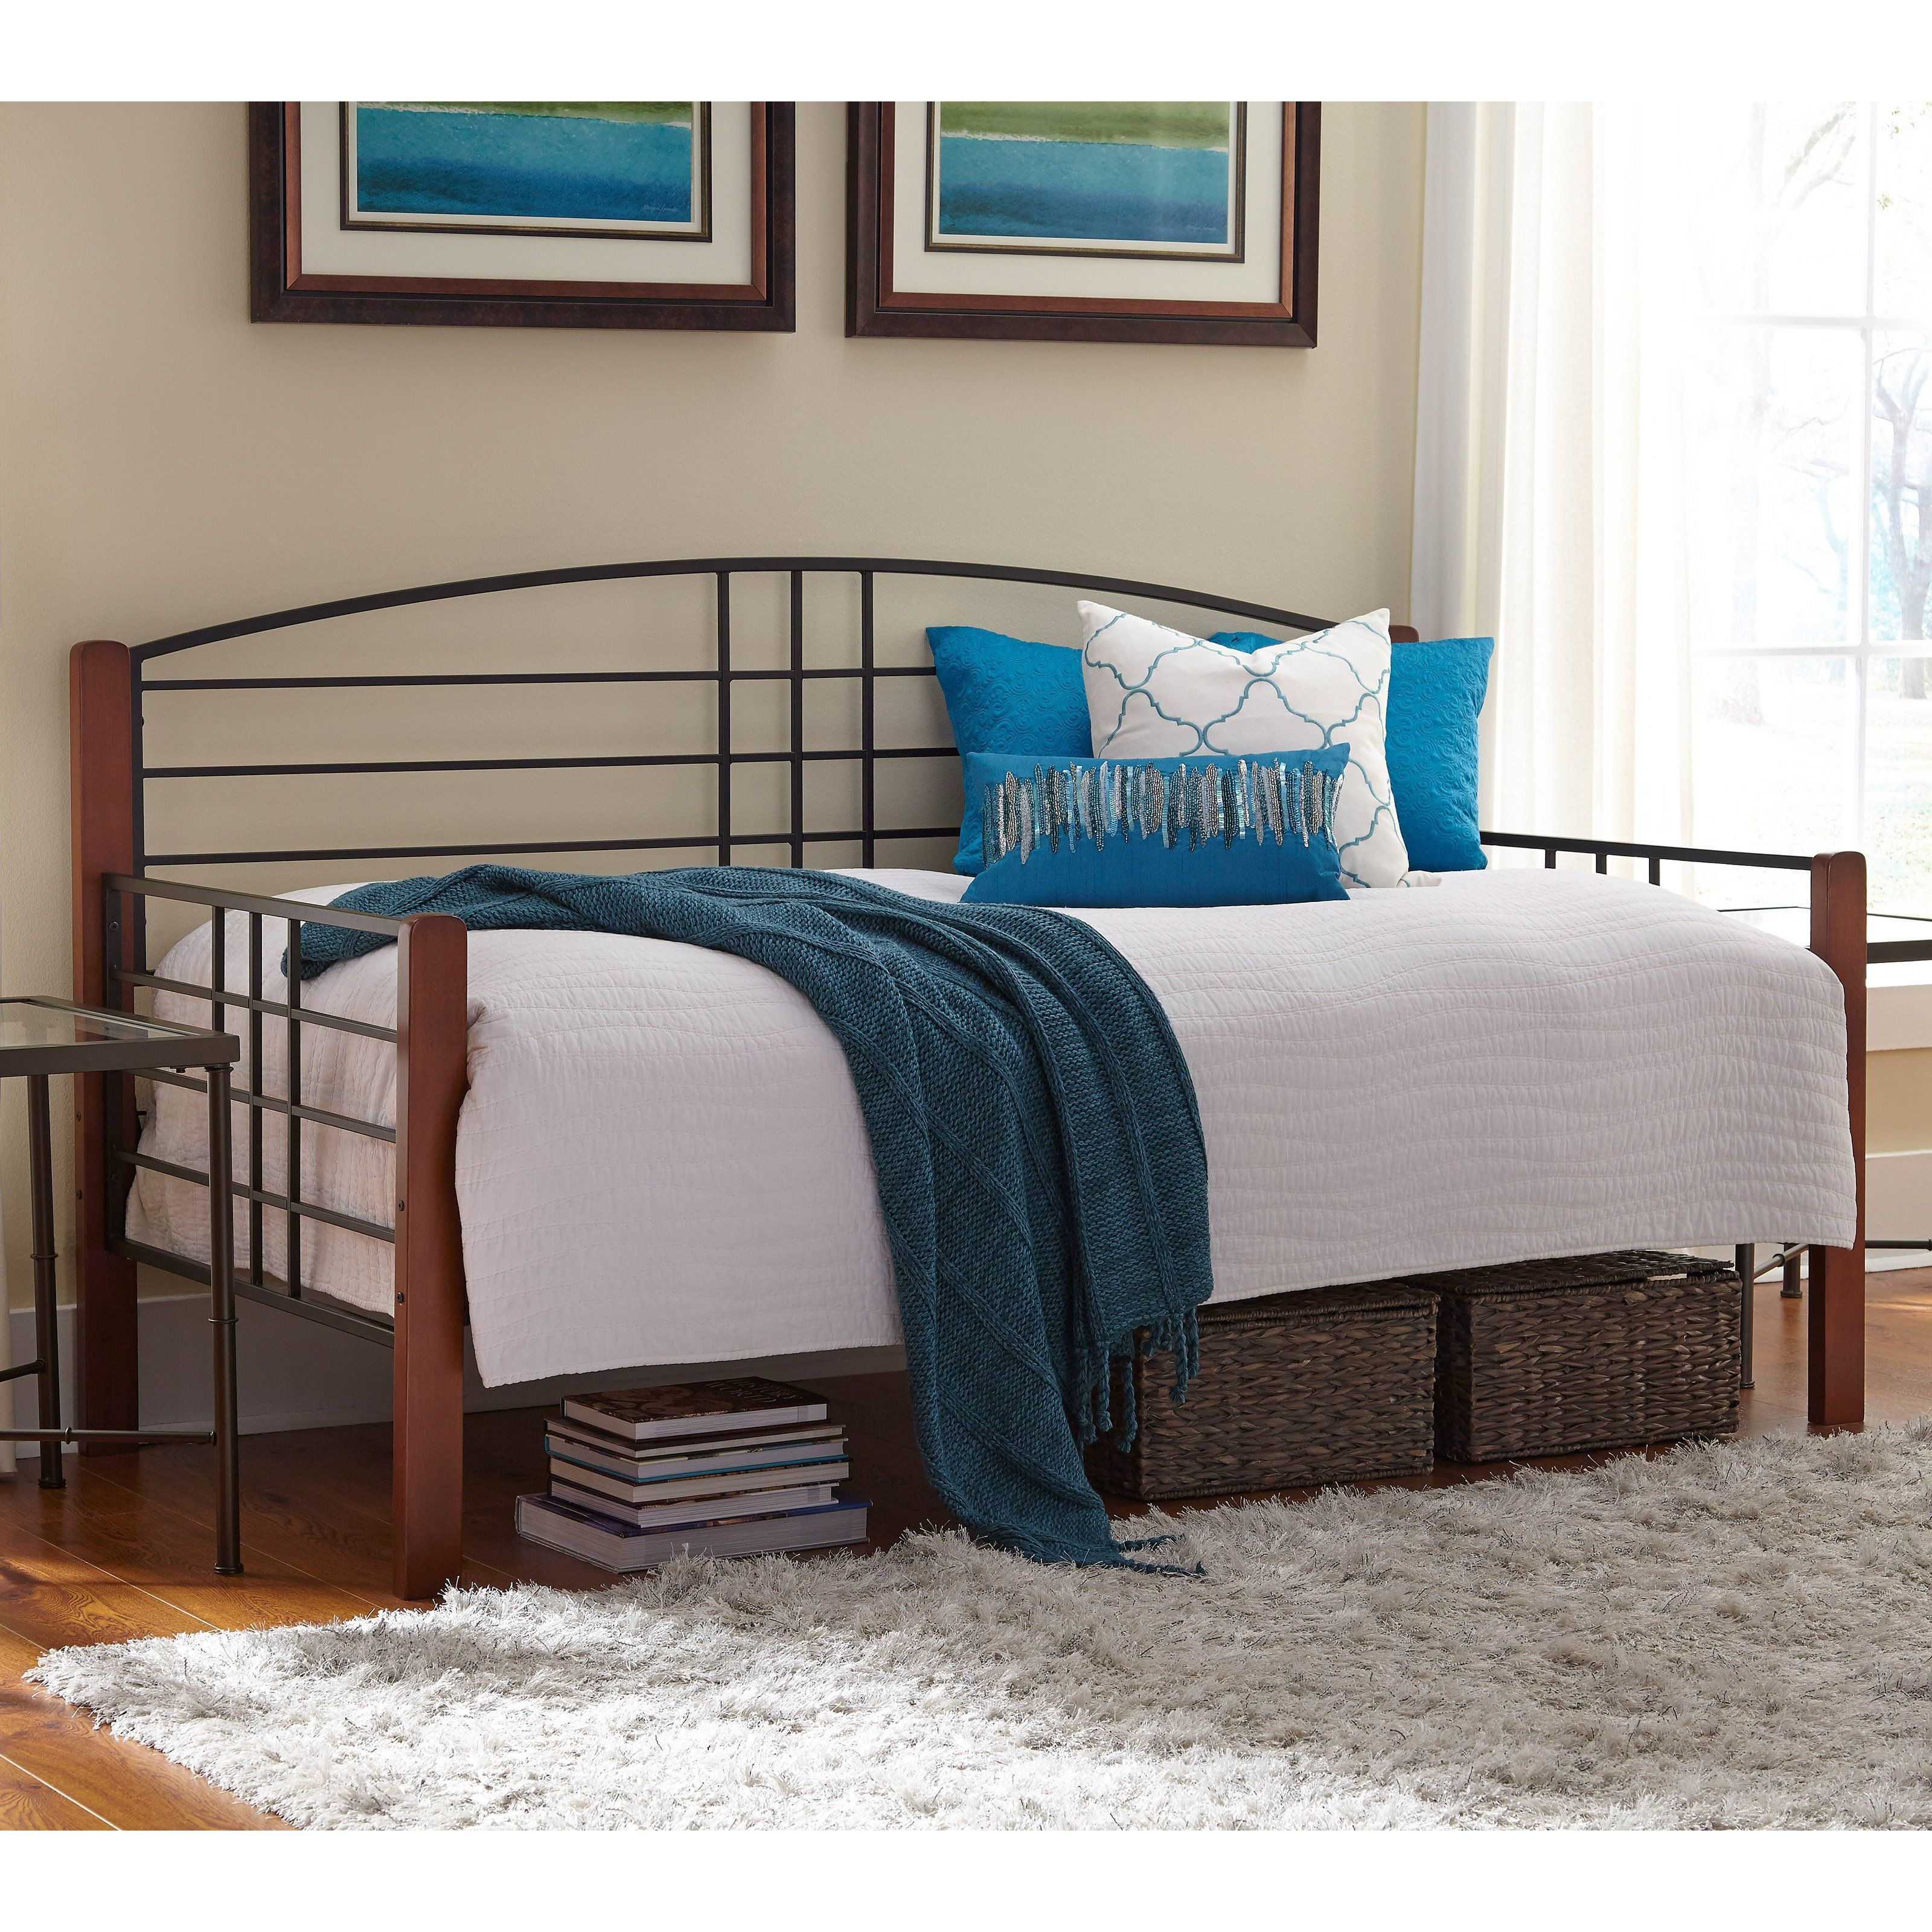 Fashion Bed Group Dayton Daybed from Bed